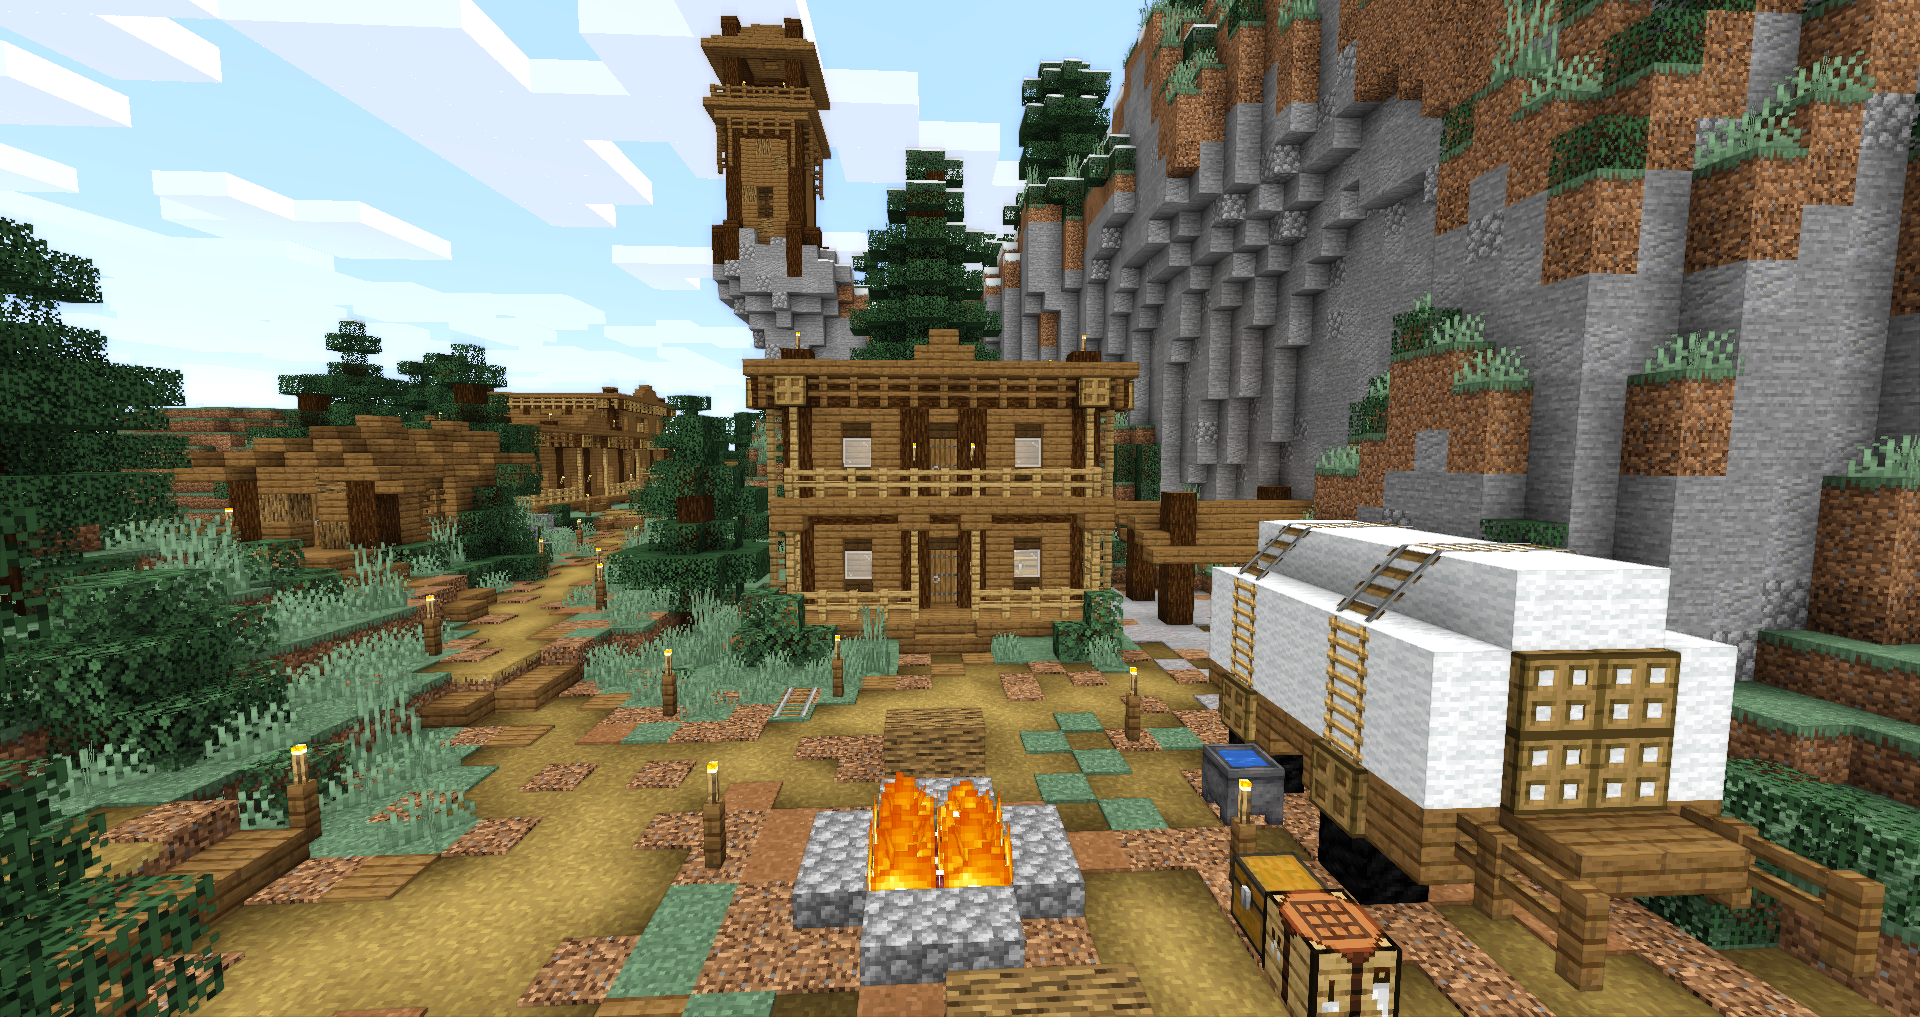 A Minecraft screenshot of a western style building and a wagon next to a campfire.